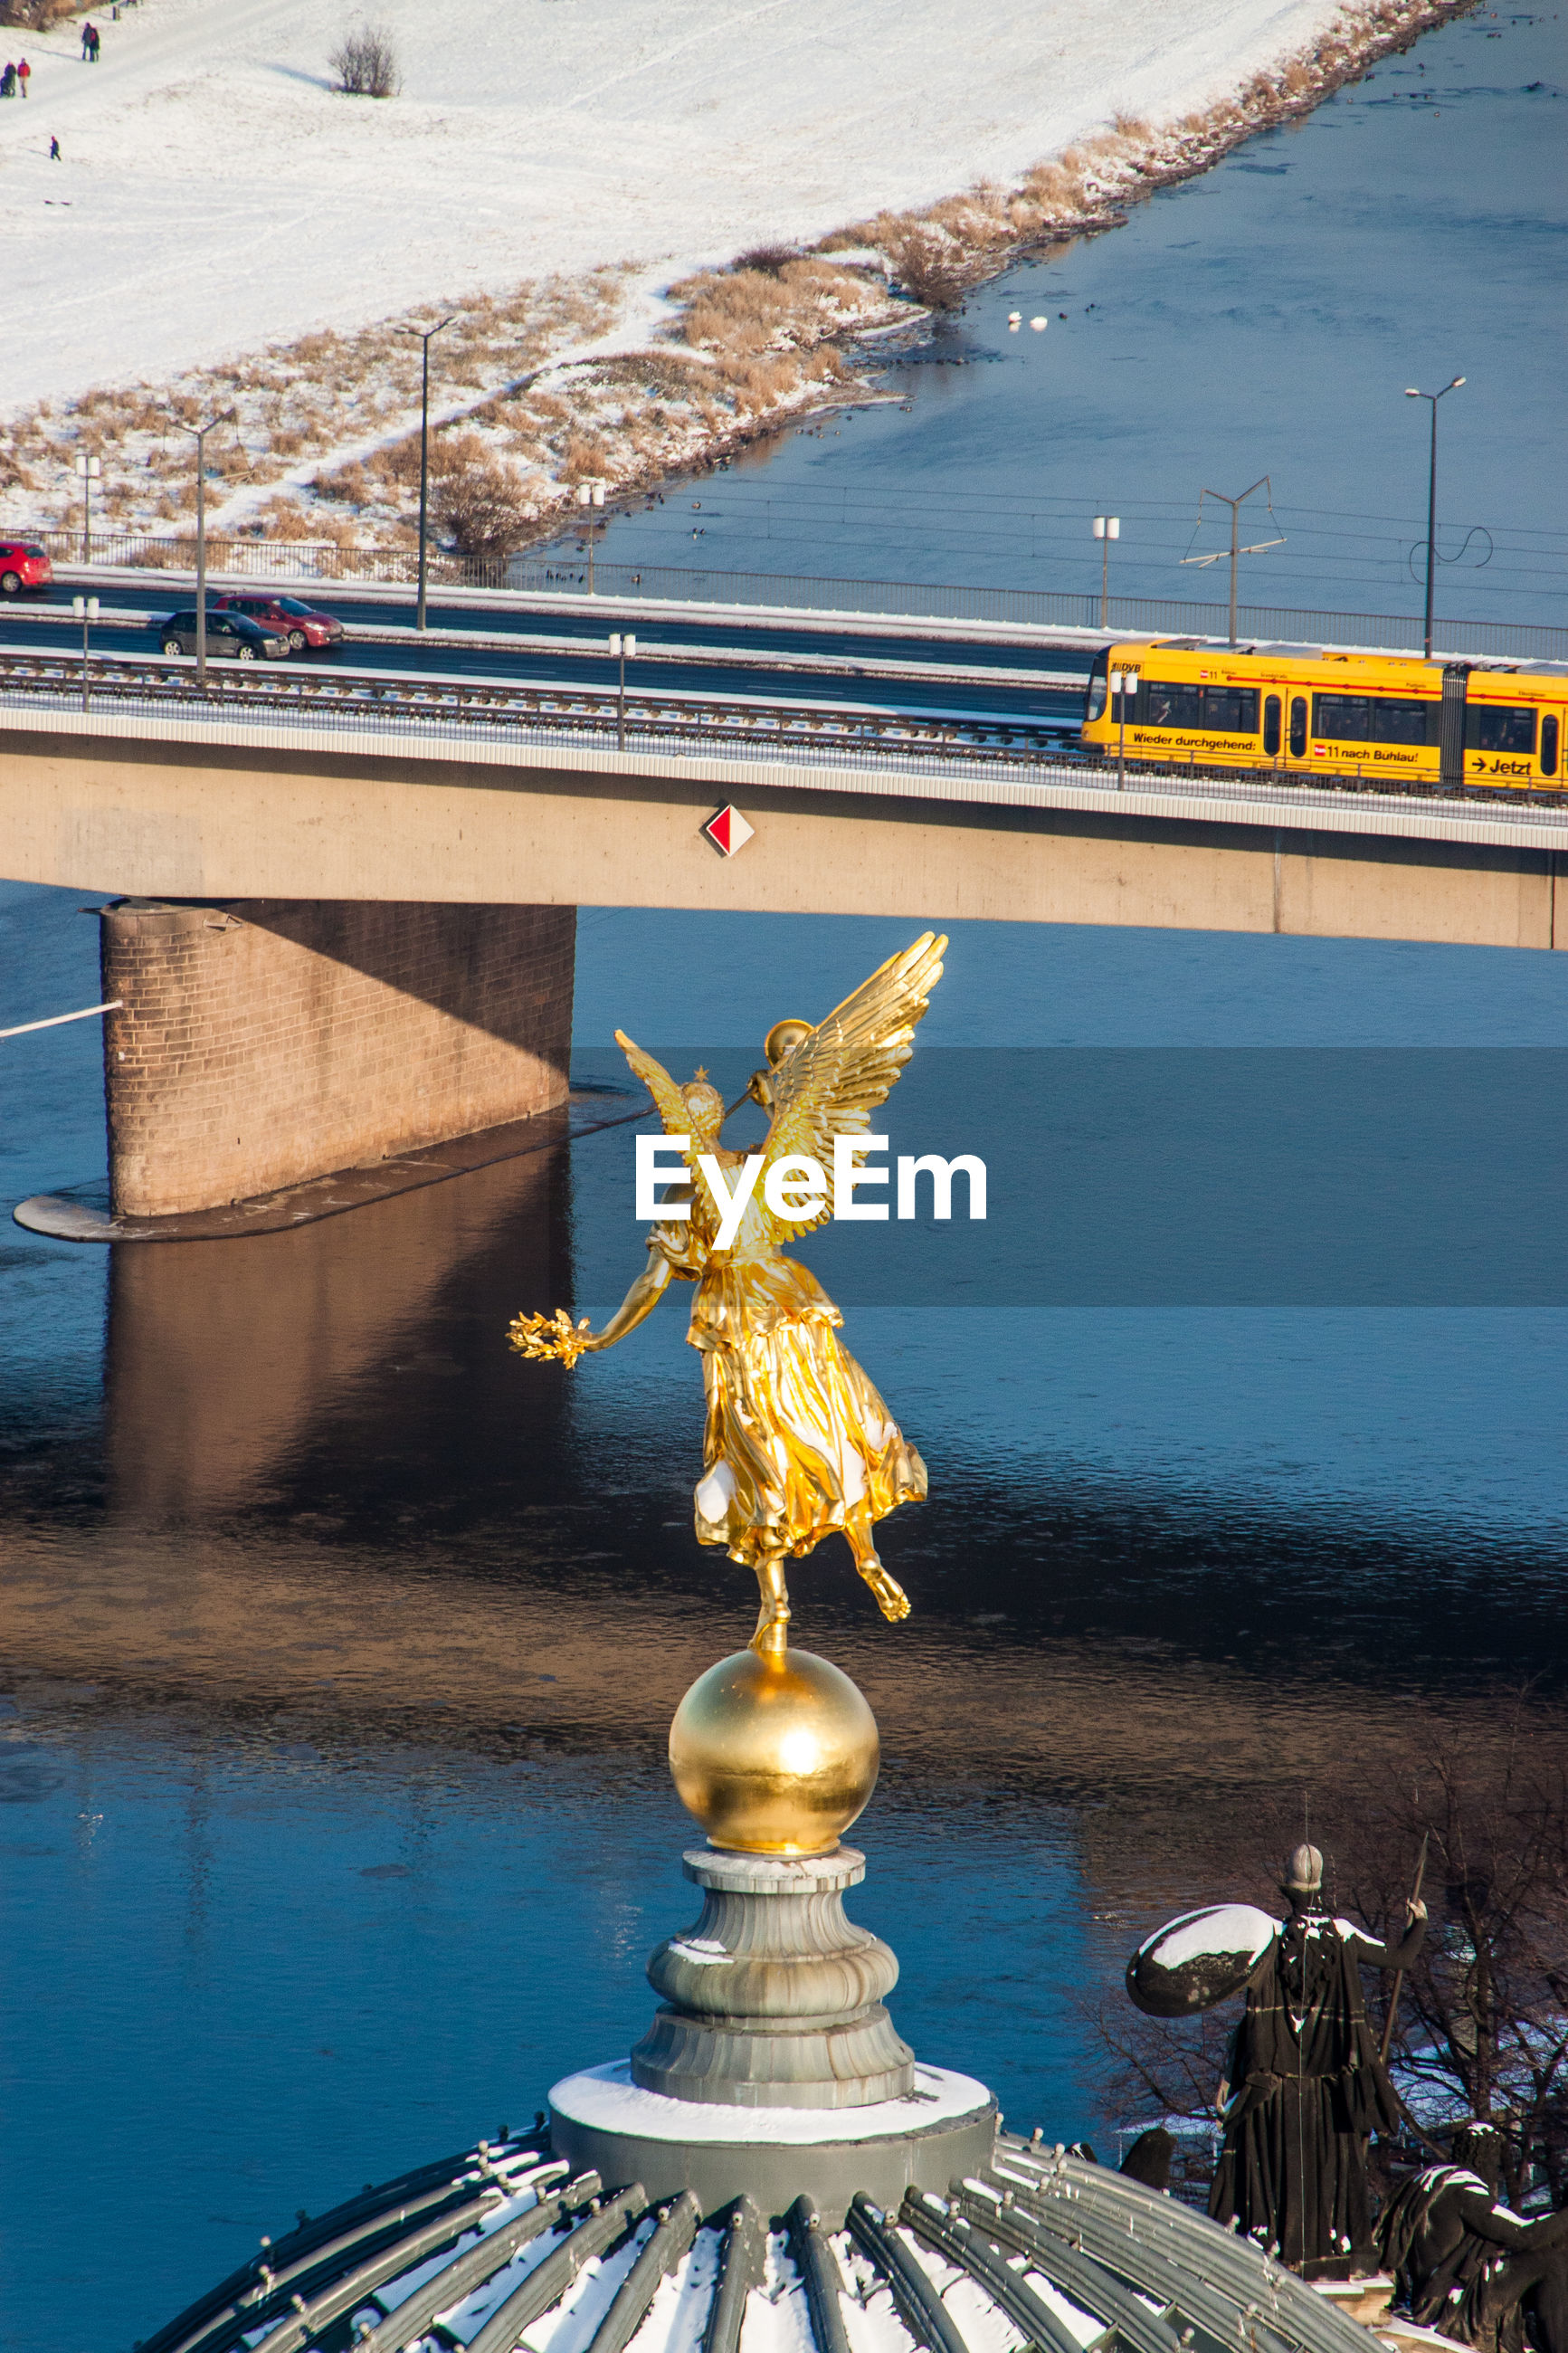 Gold angel statue on academy of fine arts dresden dome against river